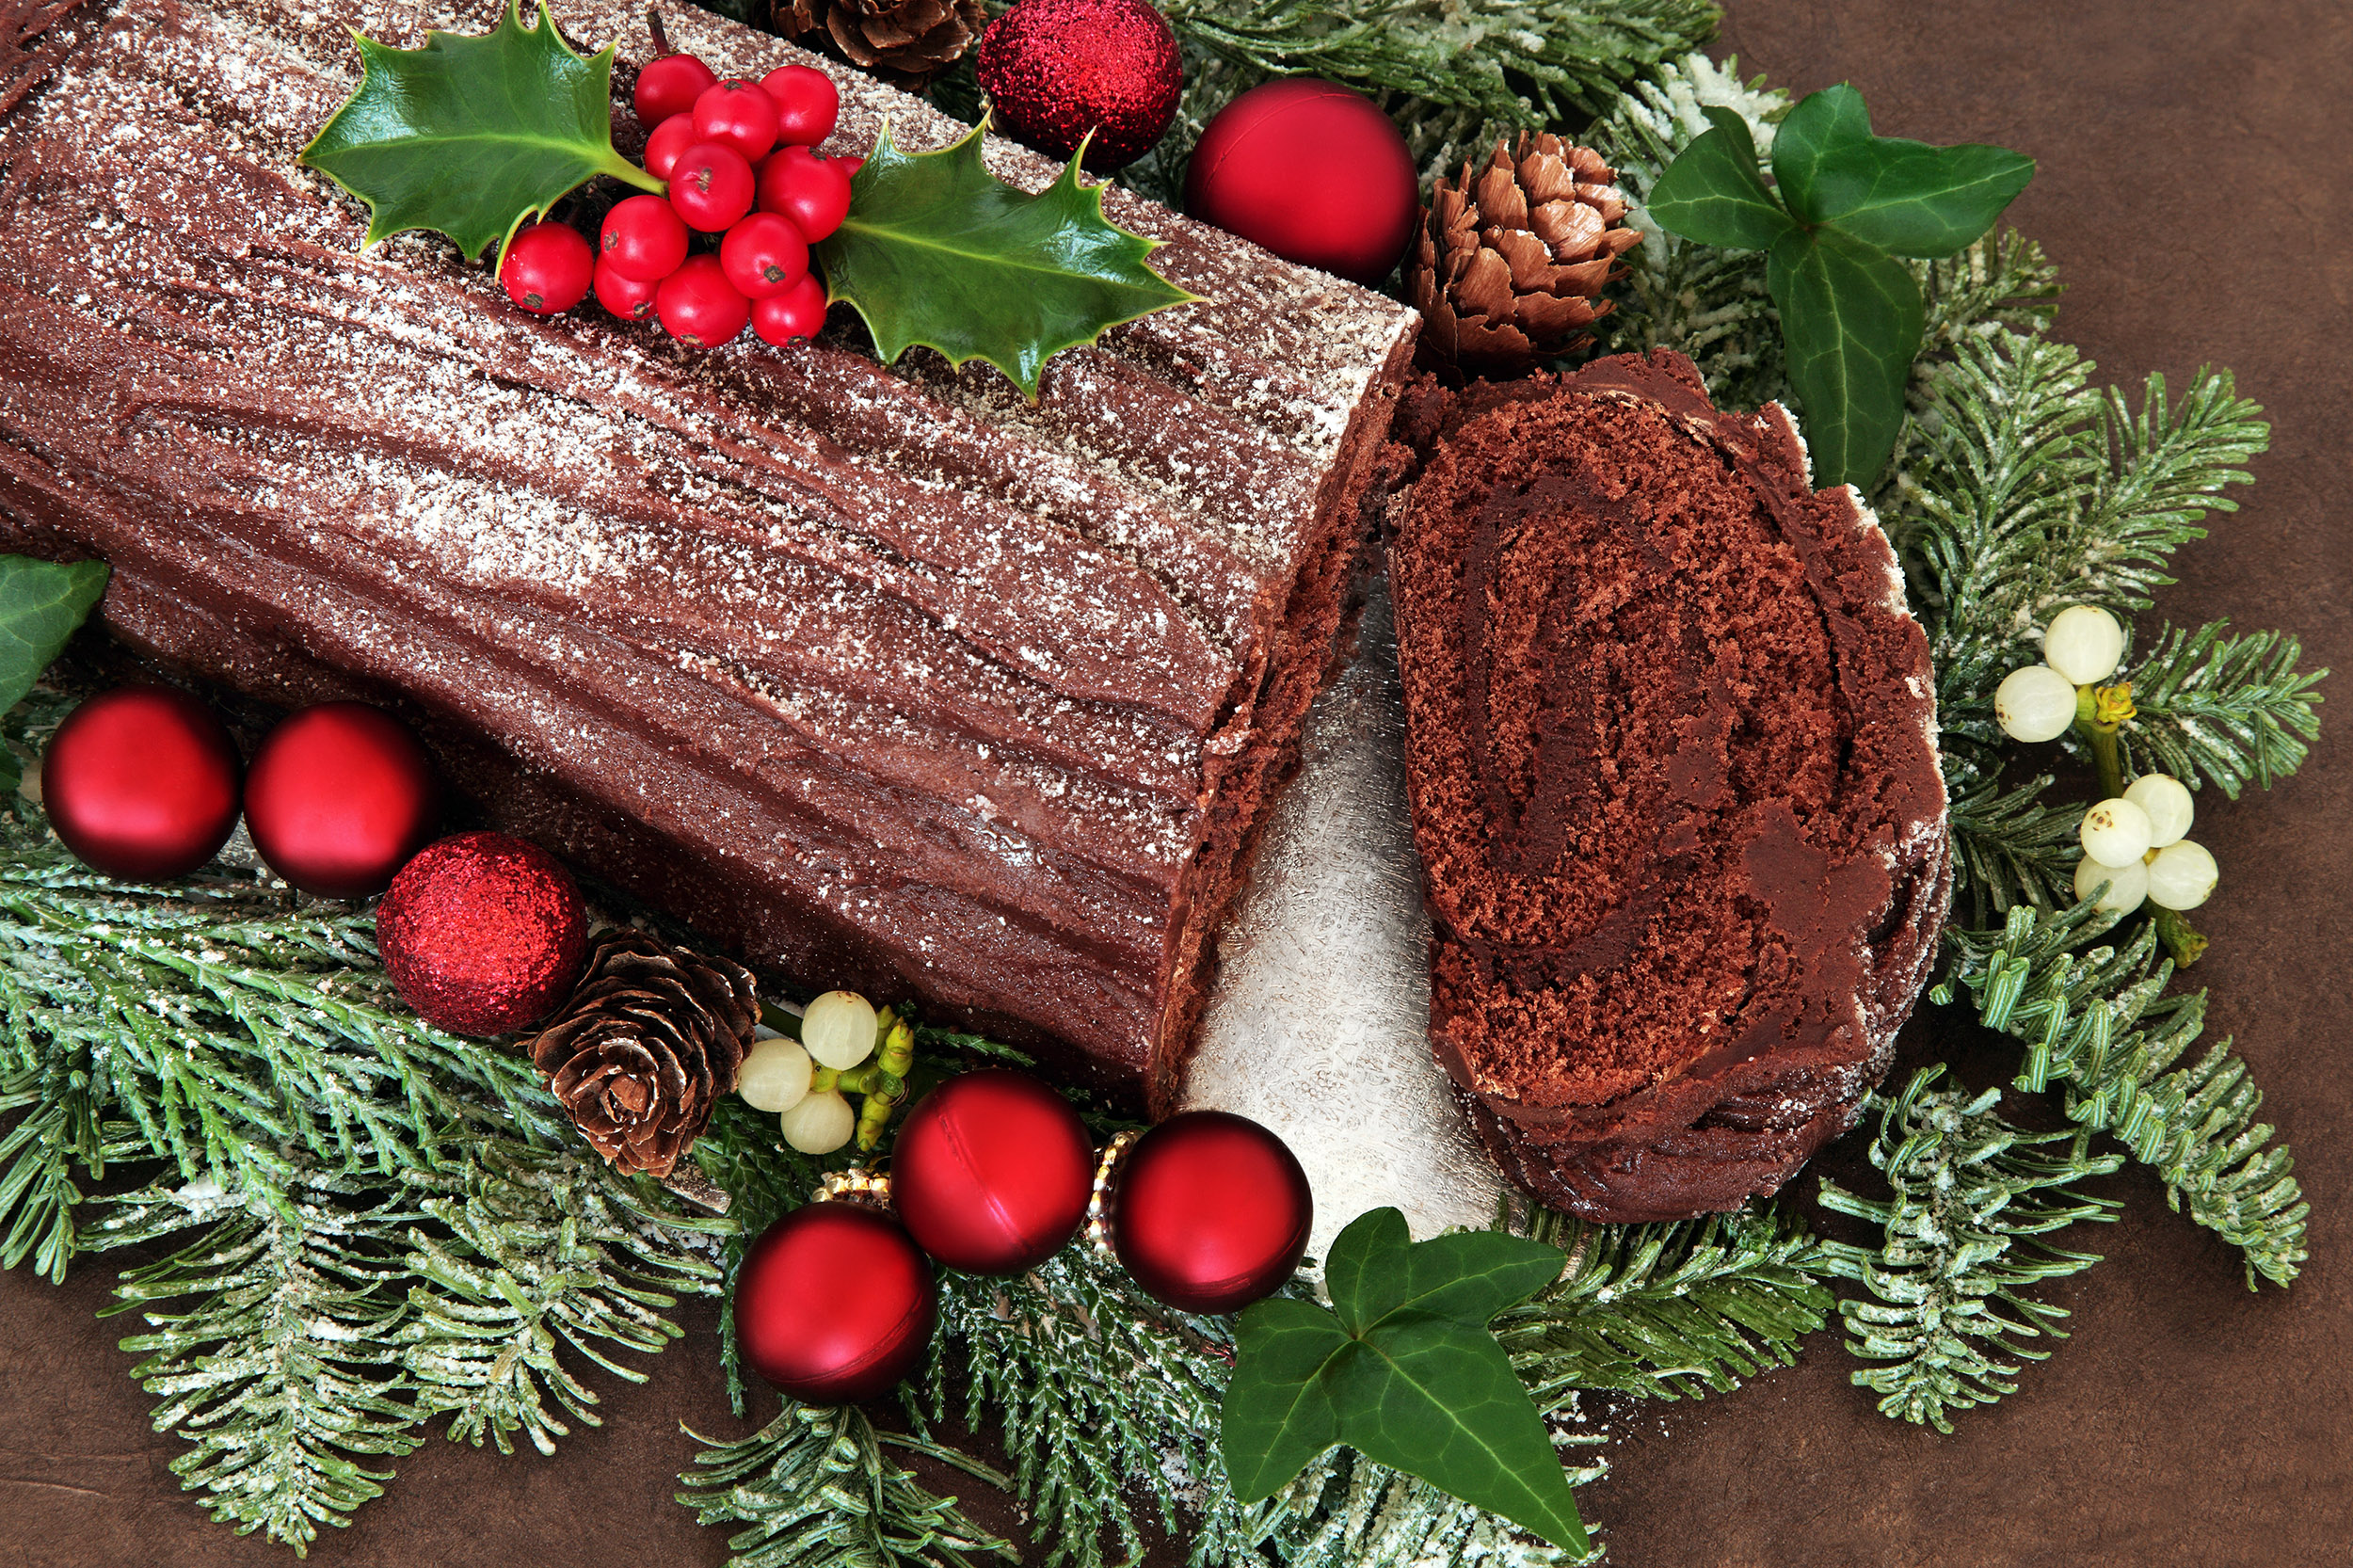 Chocolate Yule Log for OTT Christmas Dishes